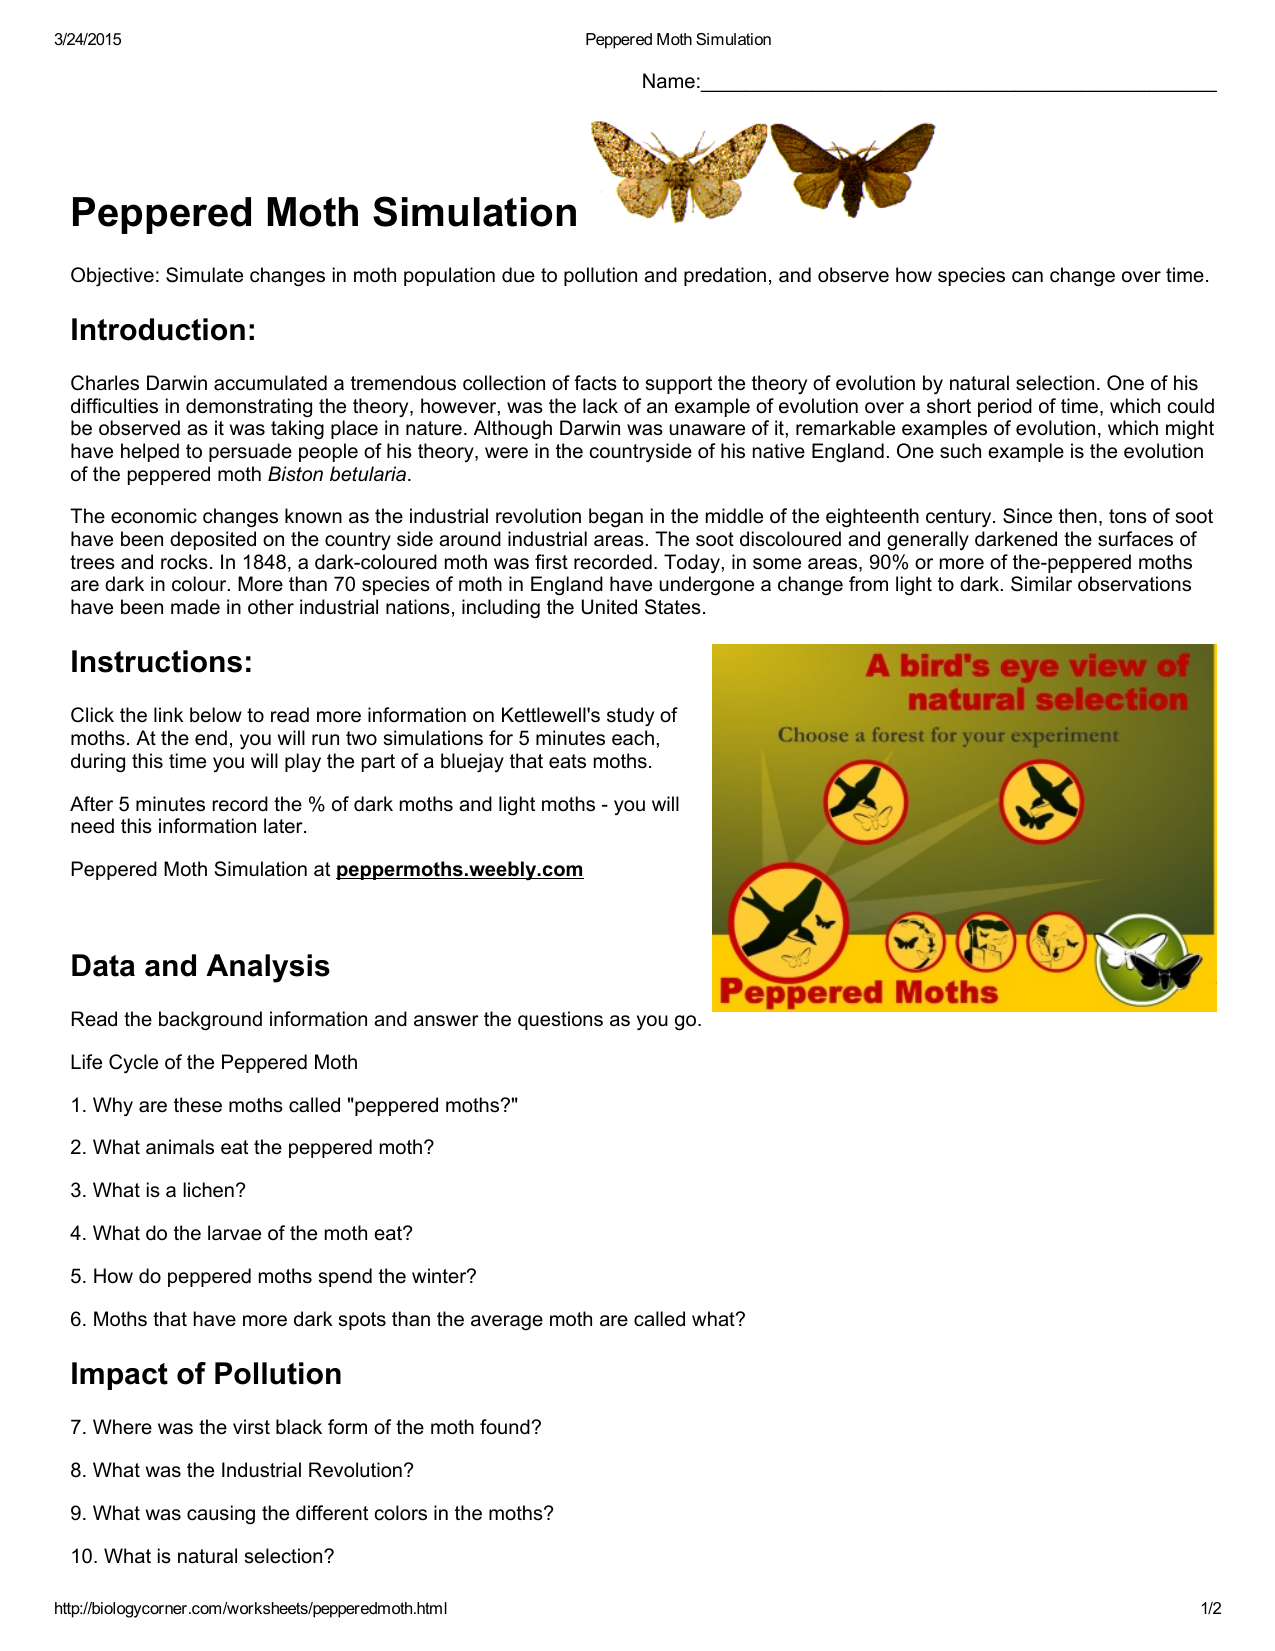 Peppered Moth Simulation Worksheet Answers - Peppered Moth ...